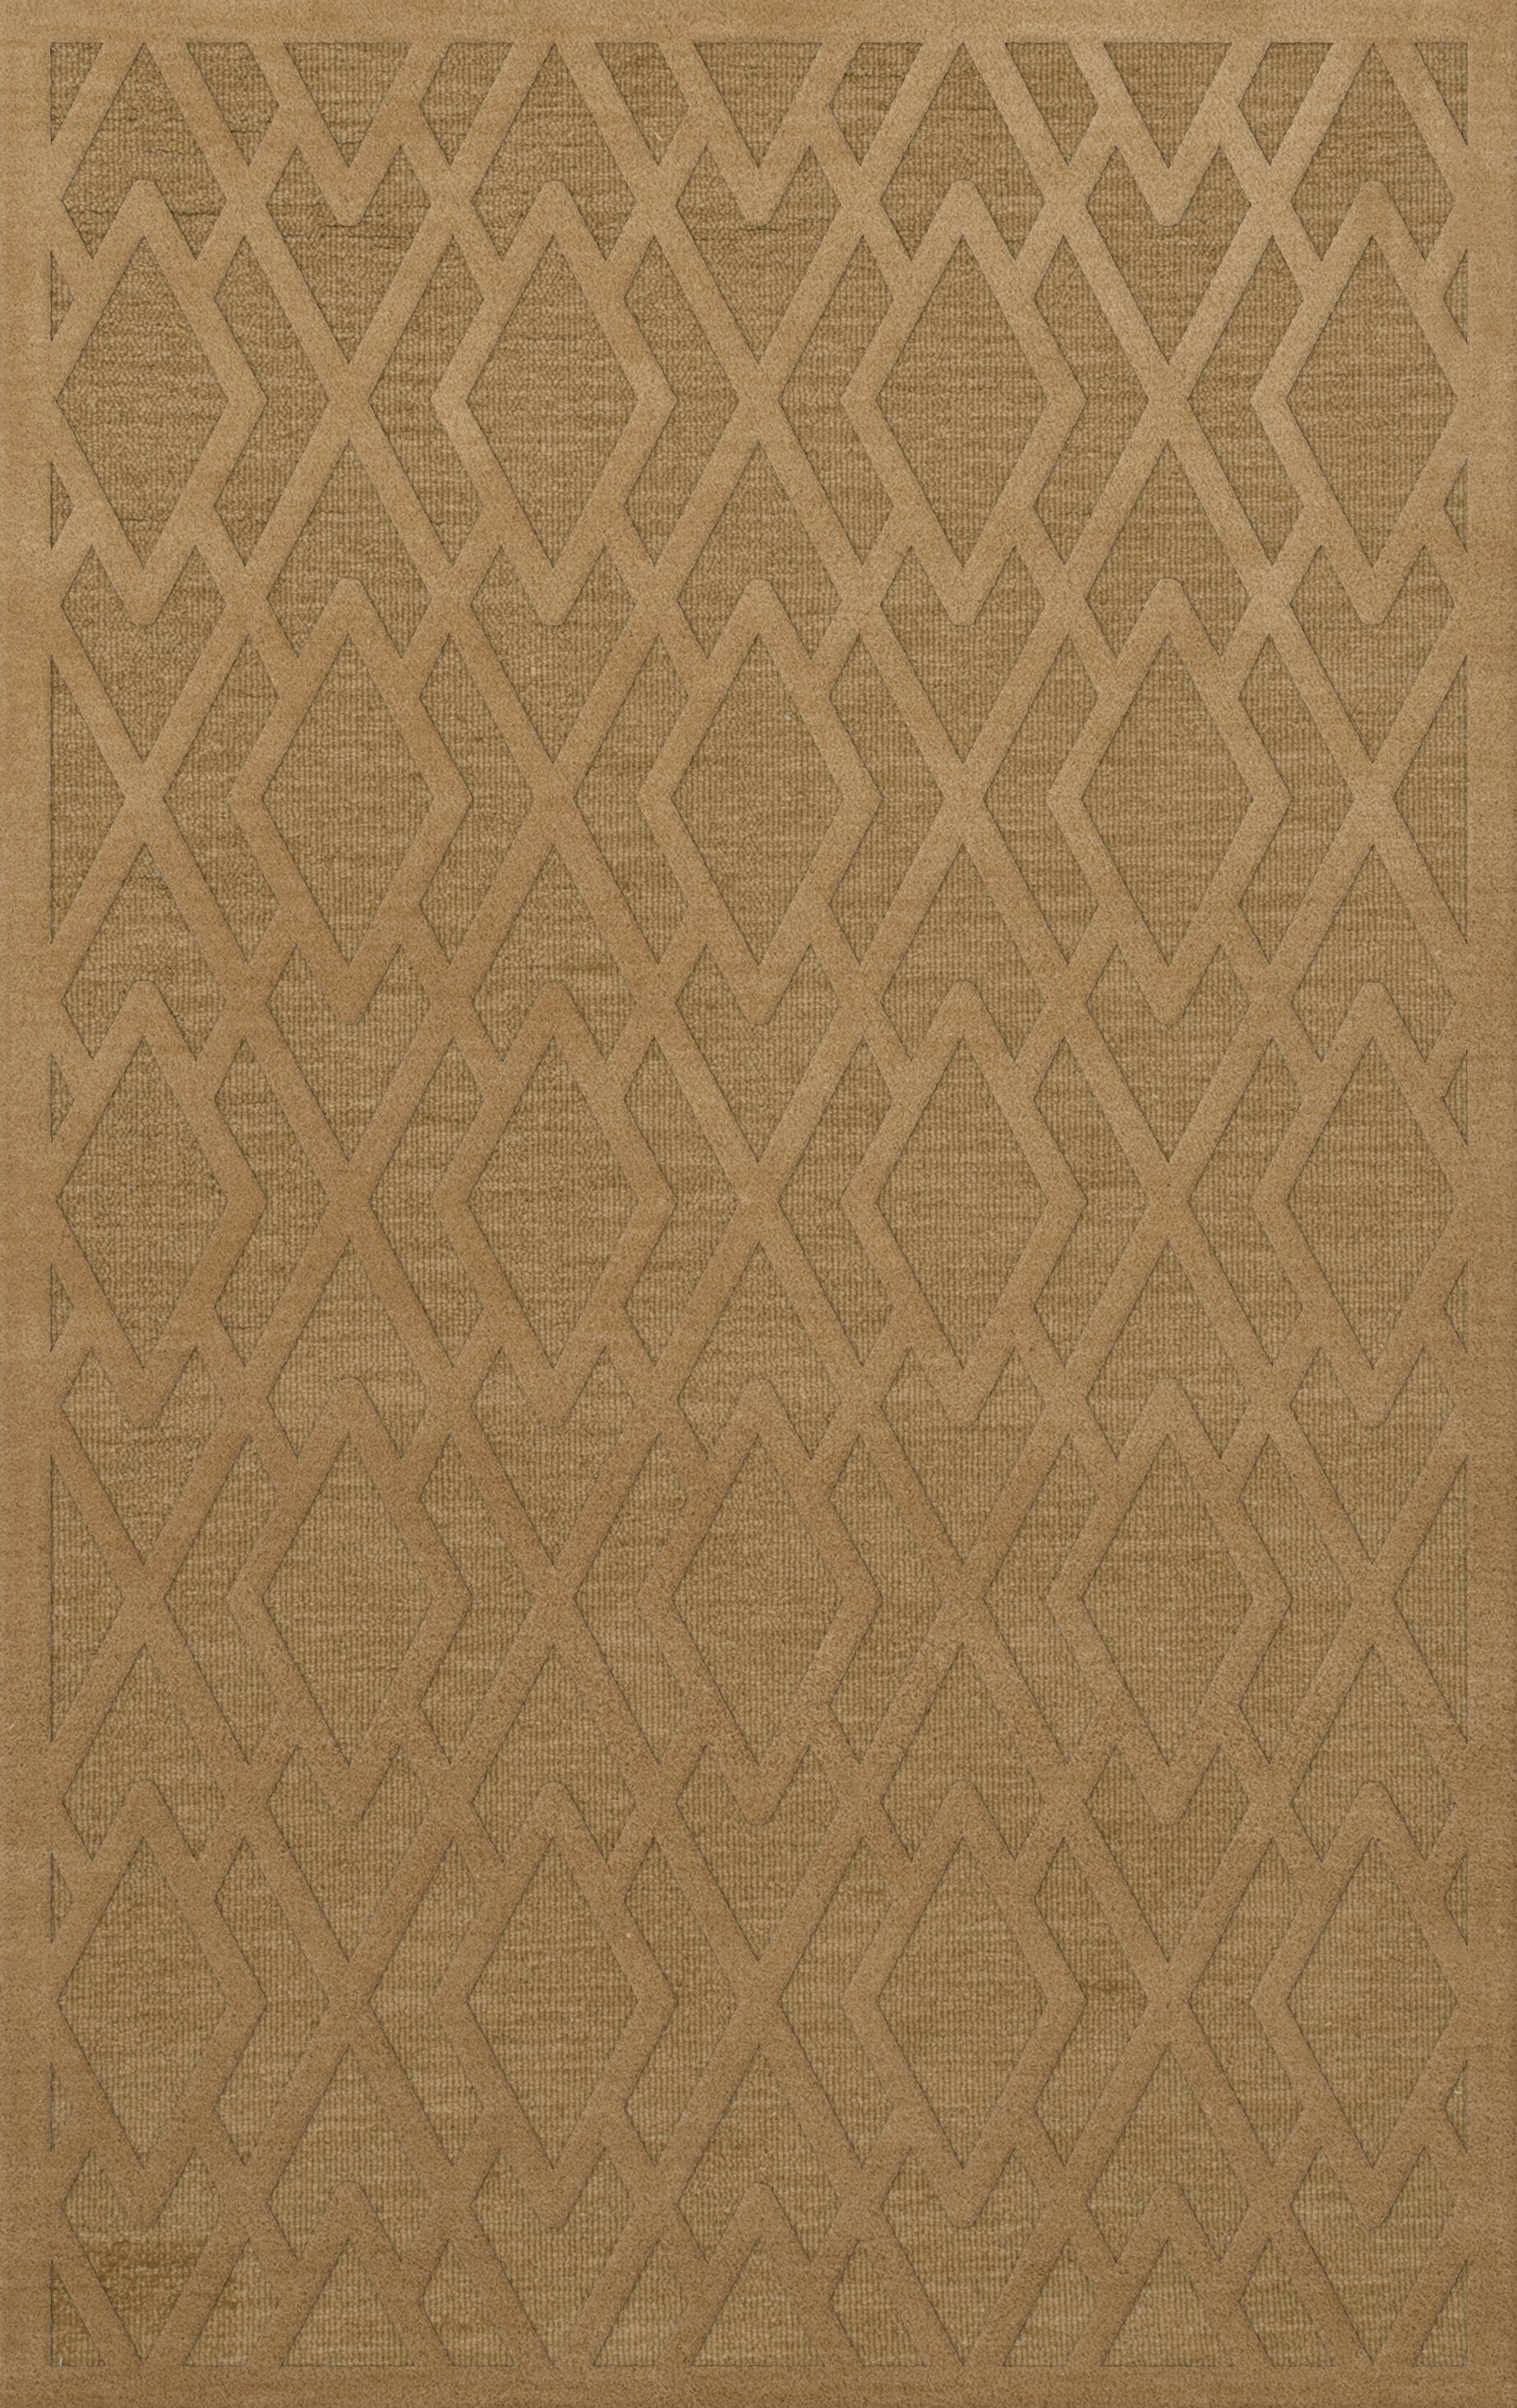 Dover Tufted Wool Wheat Area Rug Rug Size: Rectangle 4' x 6'